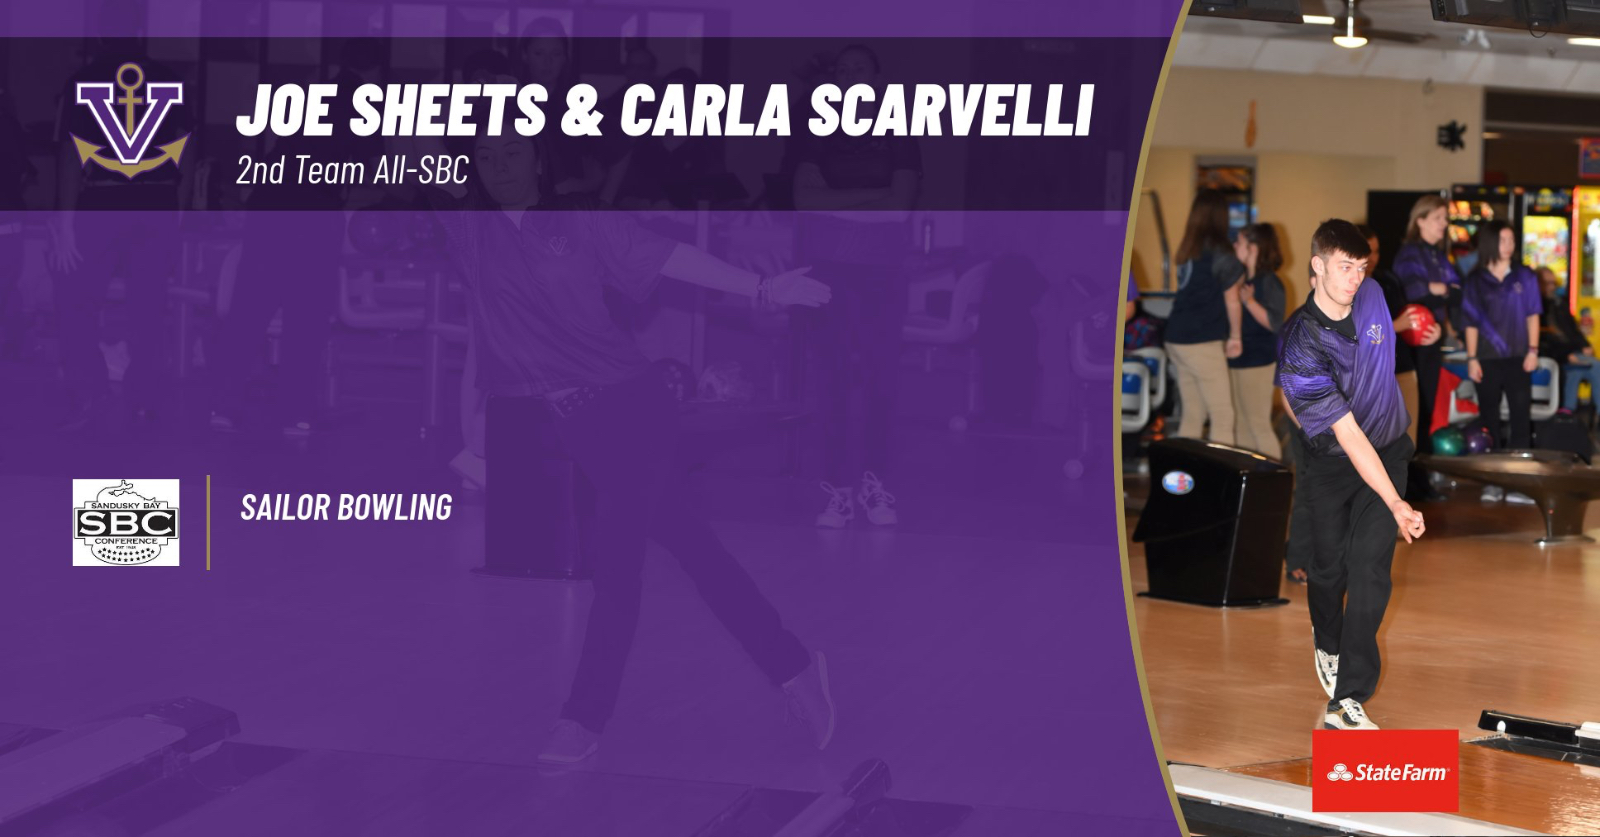 Sheets and Scarvelli Top Sailor Bowling Honors